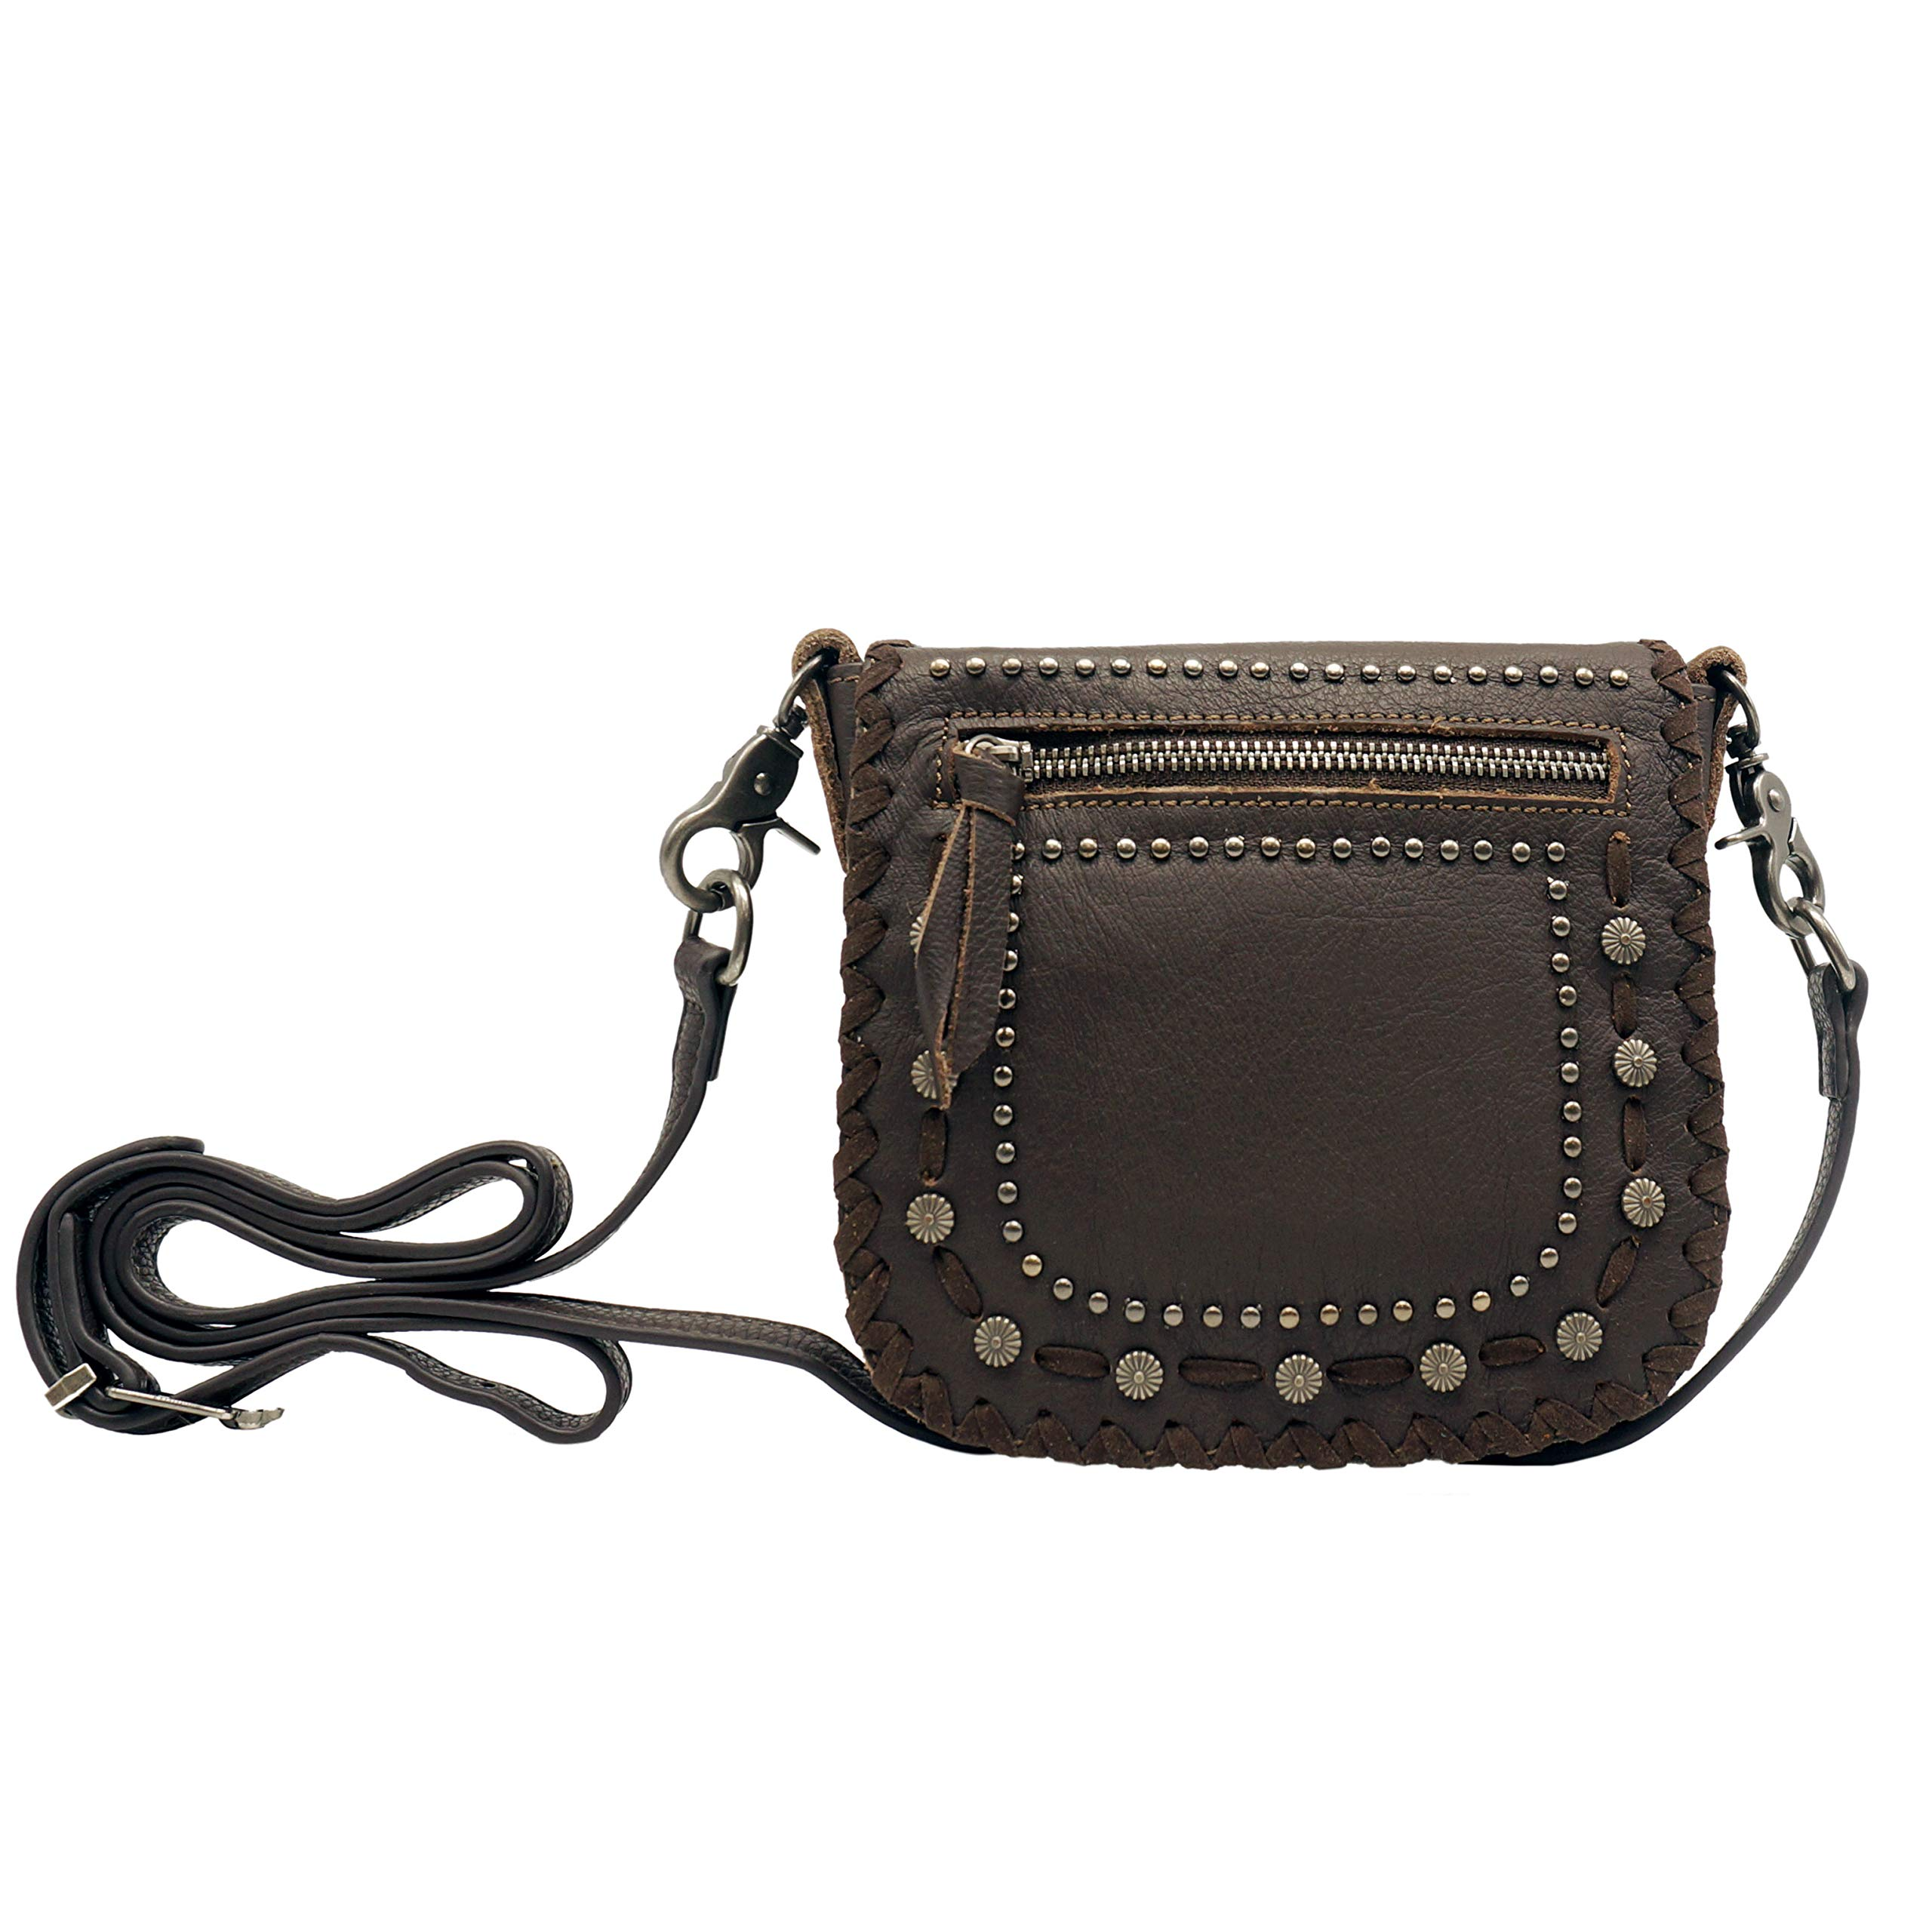 Montana West Real Leather Western Studded Crossbody Small Purse Messenger Bag Waist Pouch For Women